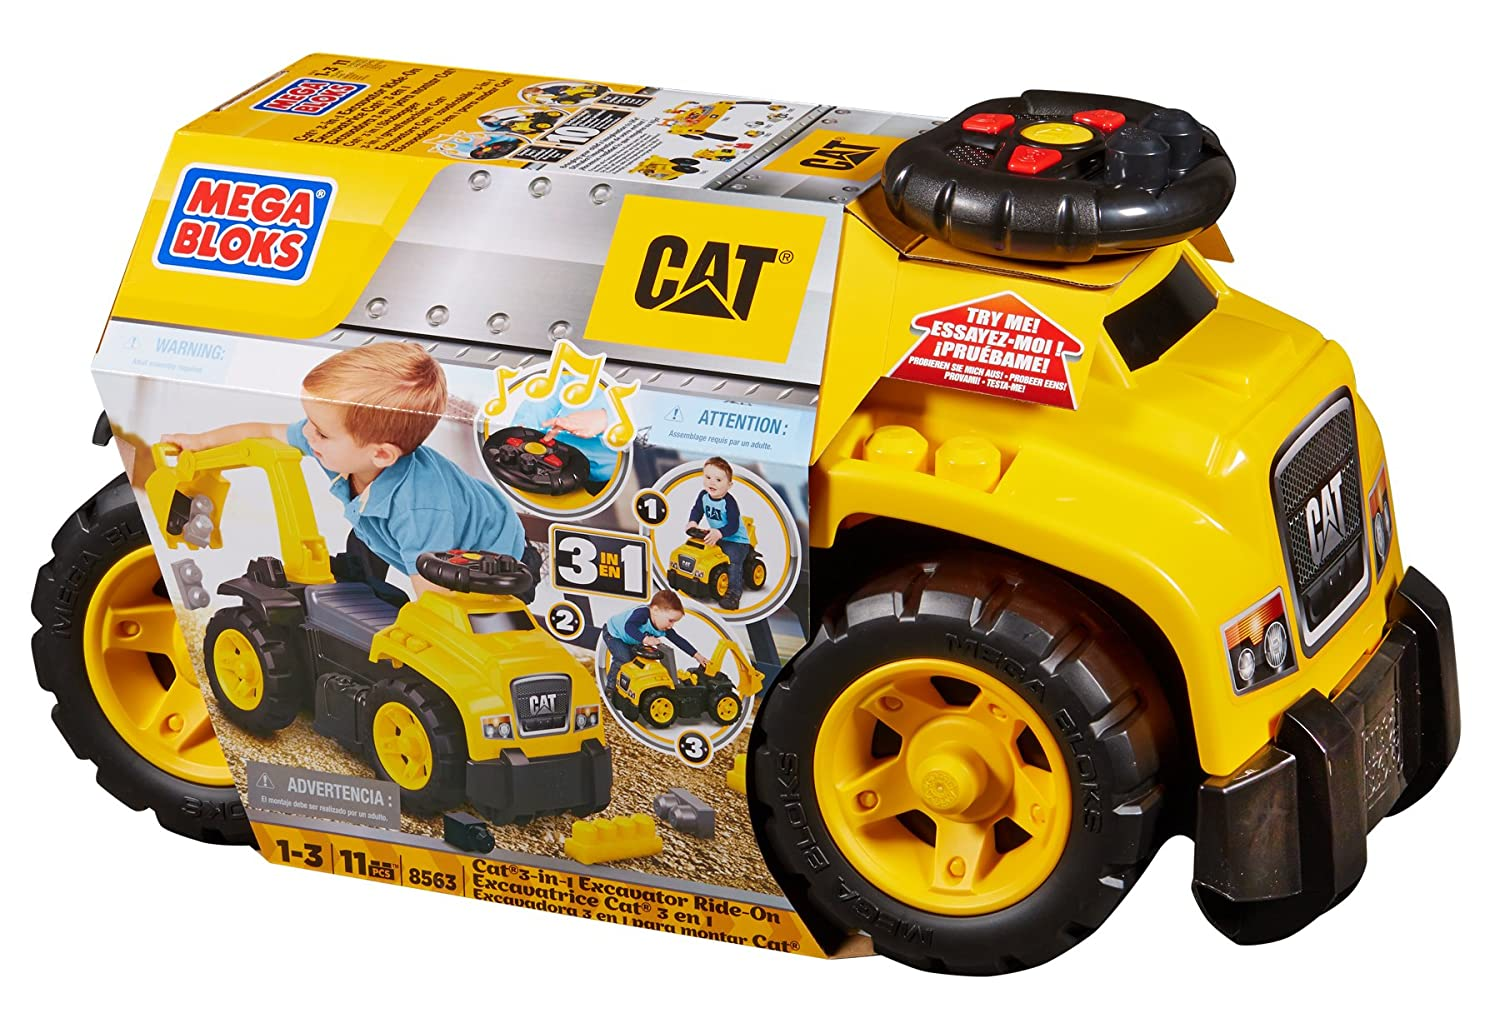 Ride-on toy for 1-year-old